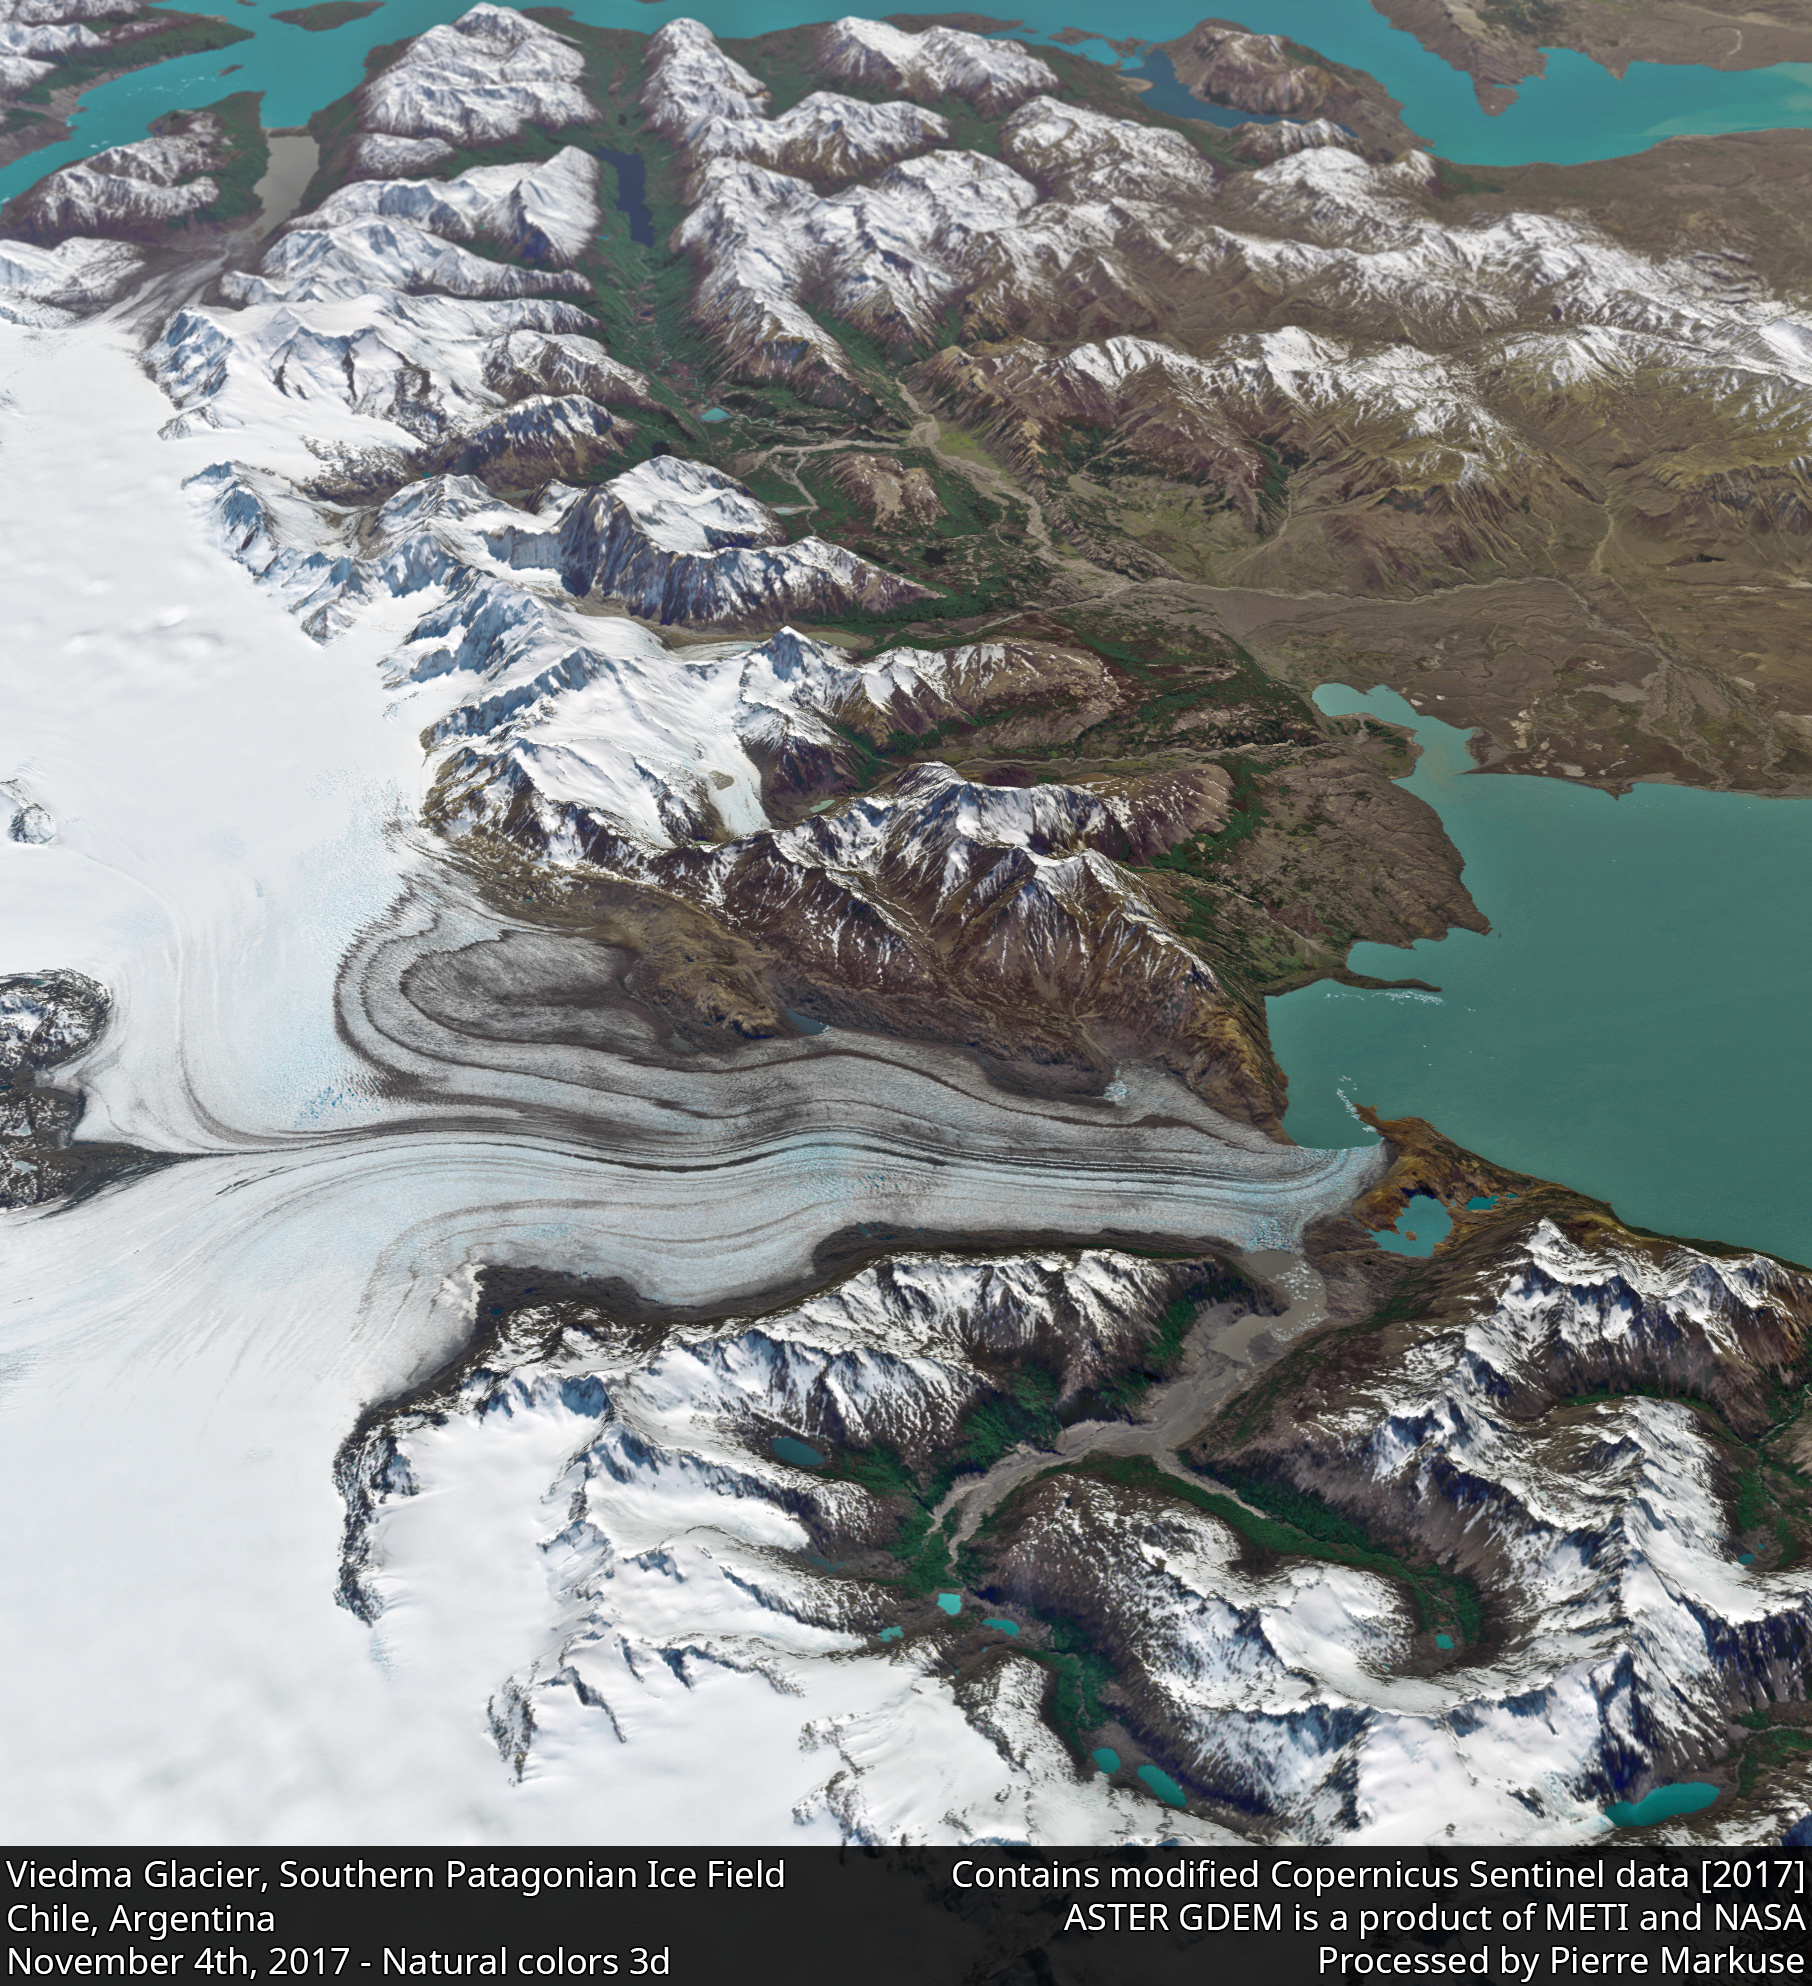 desc:Viedma Glacier, Lake Viedma, Southern Patagonian Ice Field, Chile, Argentina 3d view;photo: Copernicus/Pierre Markuse